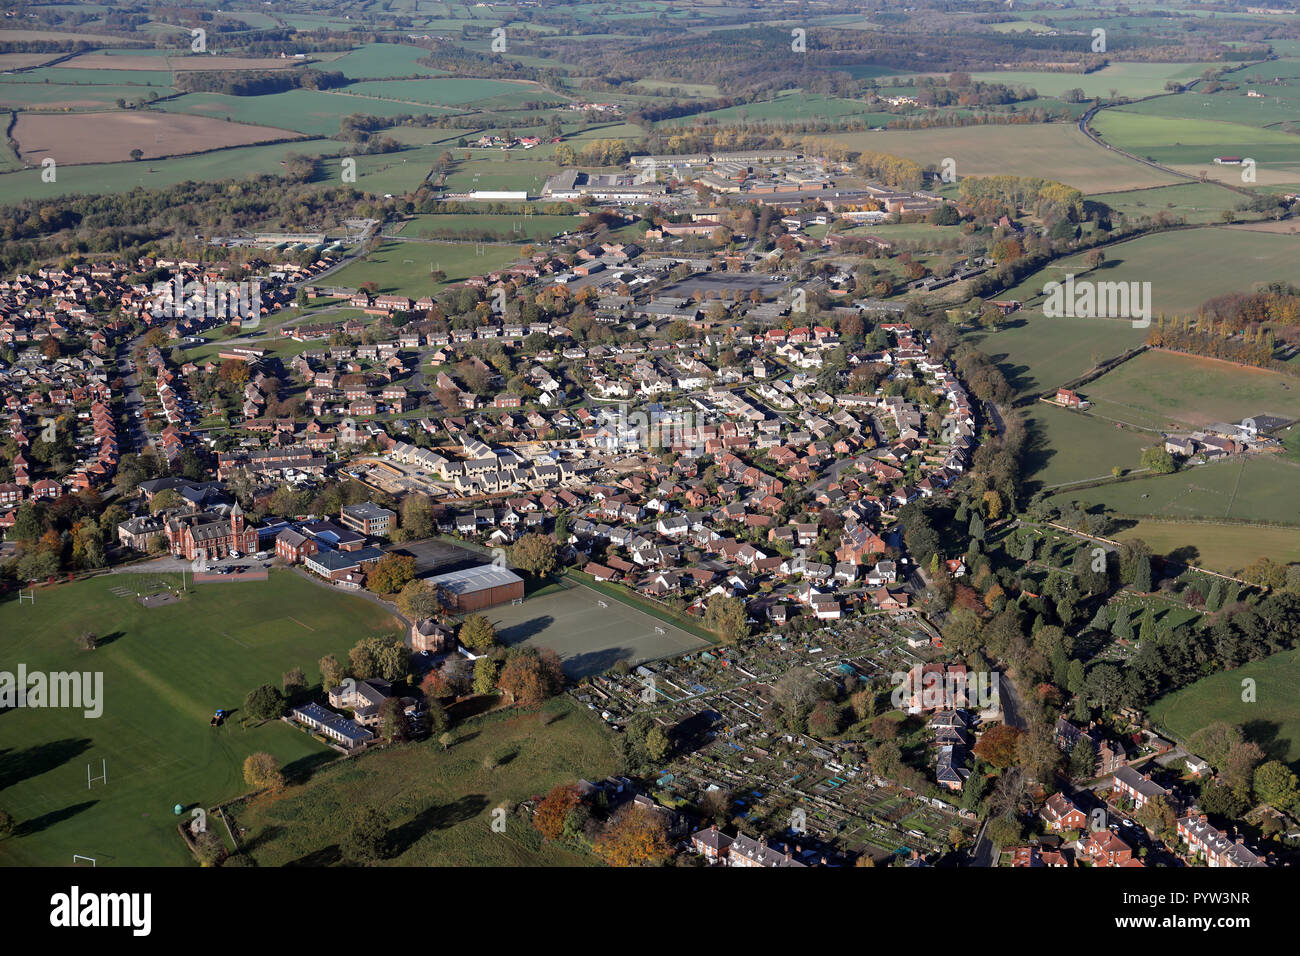 aerial view of Ripon looking north west along the Kirkby Road including the Grammar School and former army barracks, North Yorkshire - Stock Image